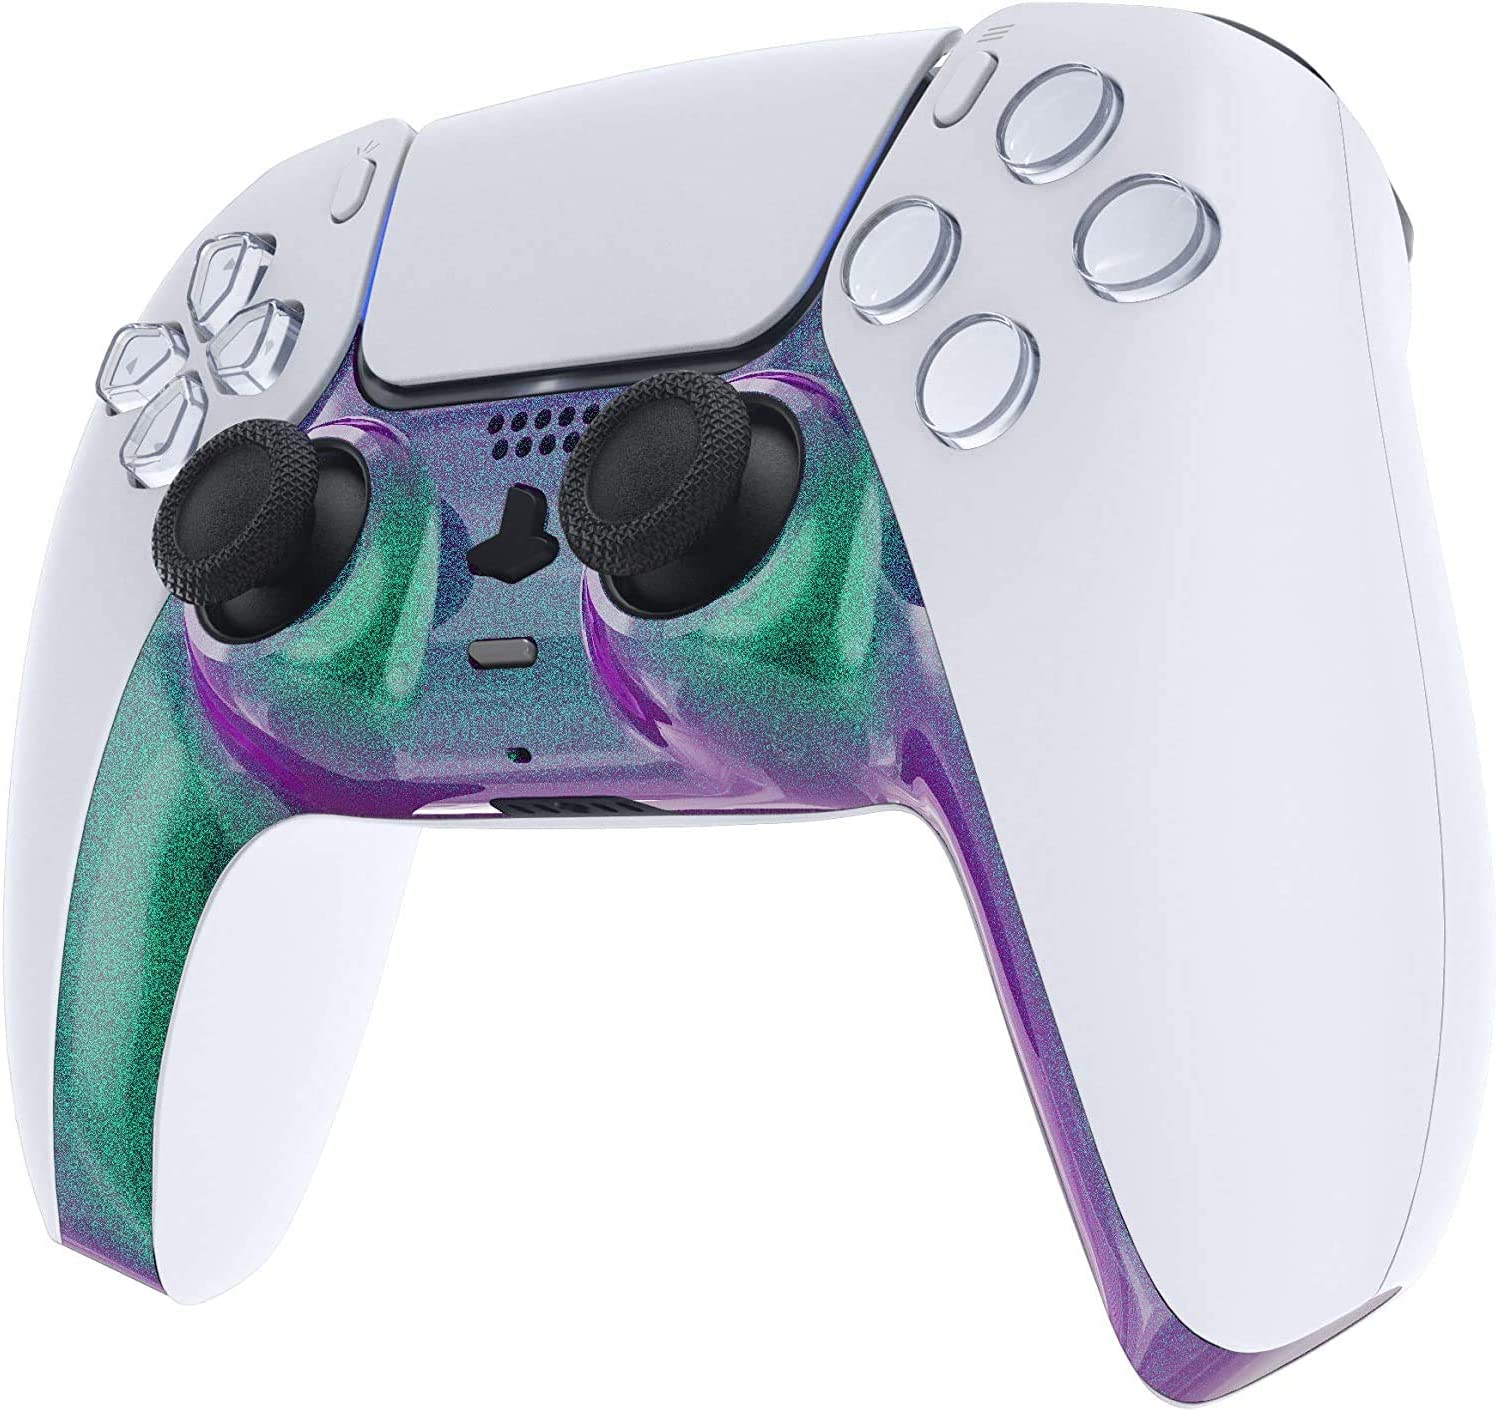 CONTROLLER NOT INCLUDED Duo Tone Purple Green PS5 Custom Replacement Controller Trim Faceplate Shell Plate for Playstation 5 Dualsense with Accent Rings